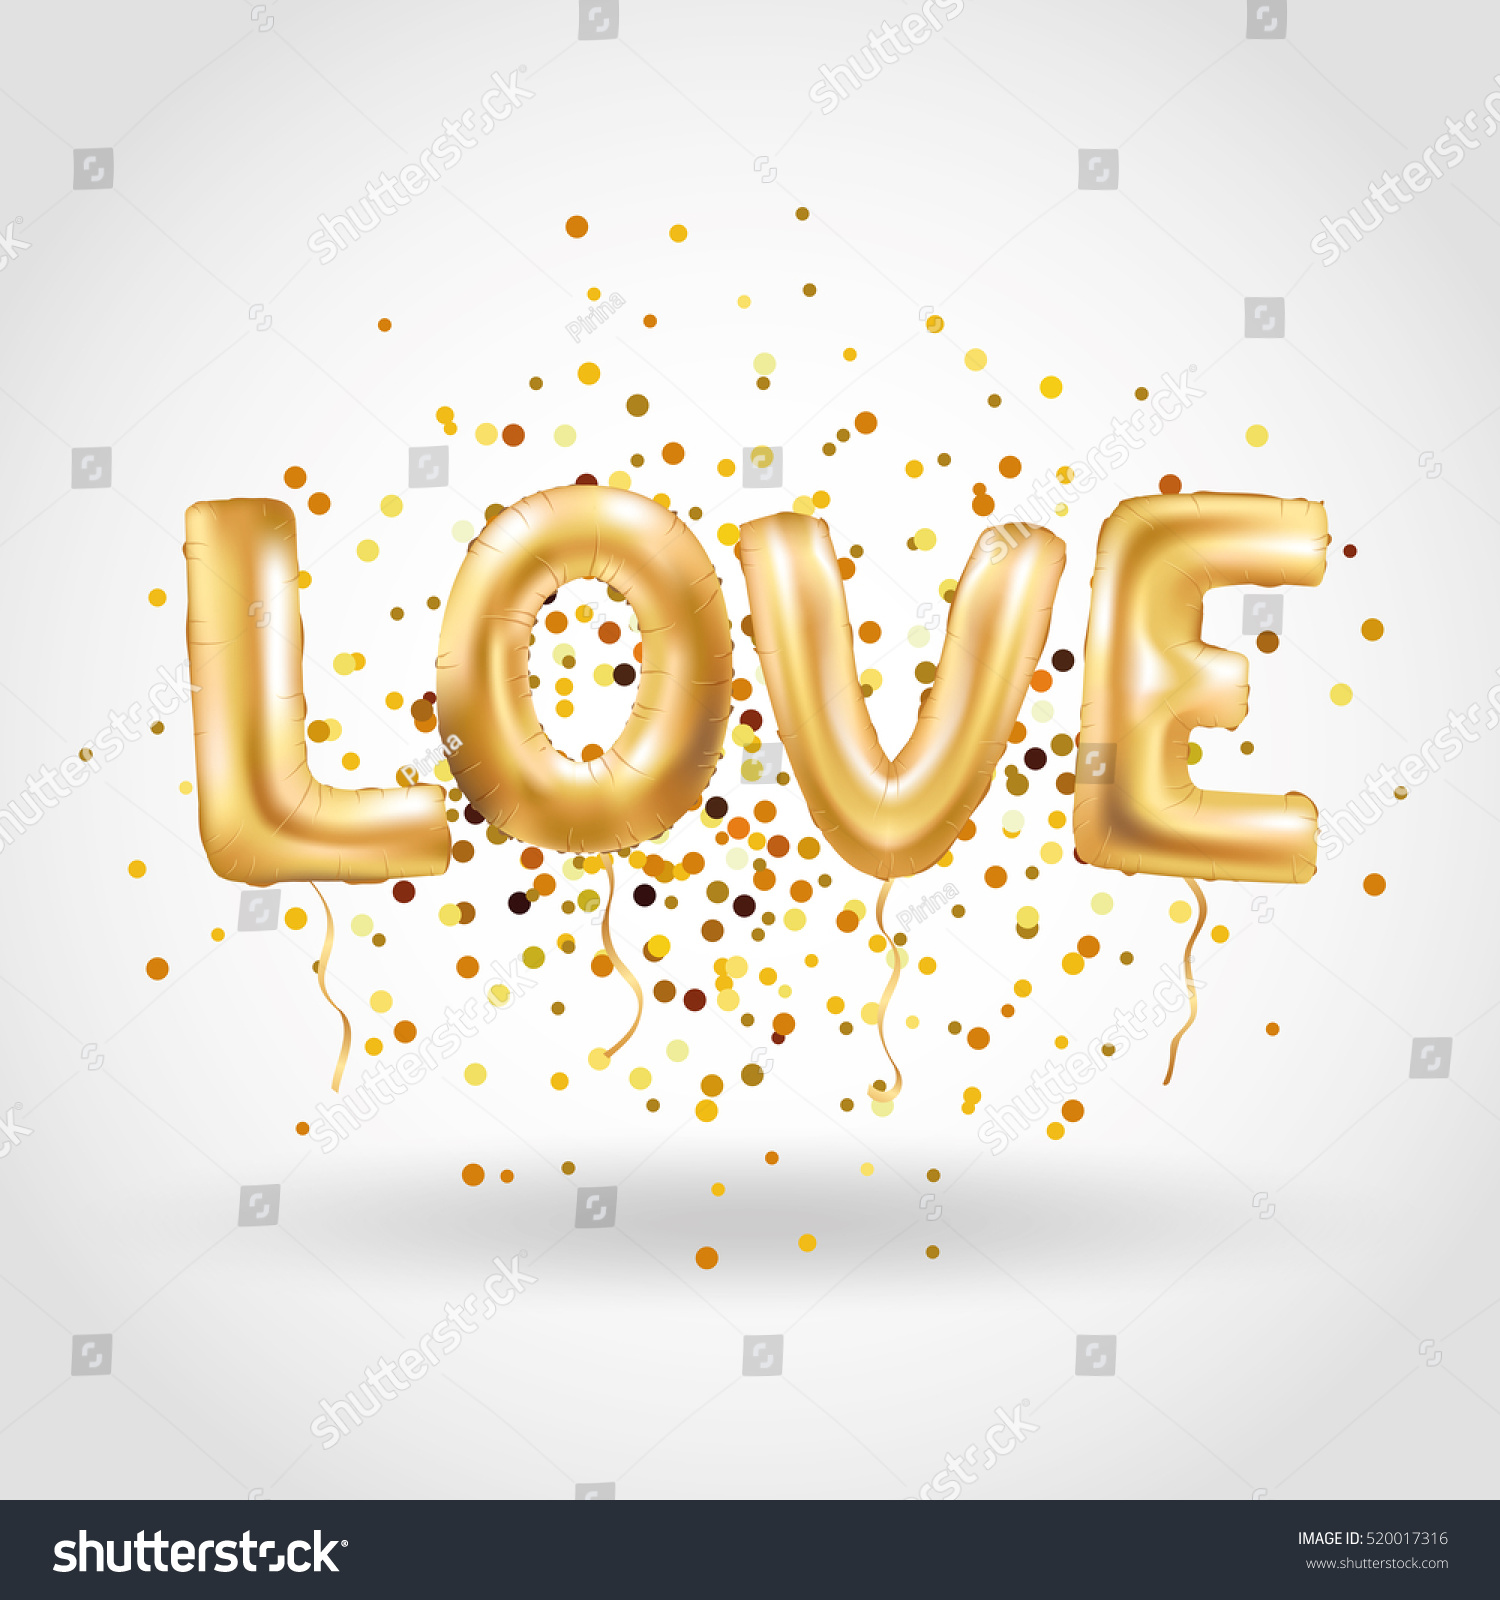 Gold Letter Love Balloons Love You Stock Vector